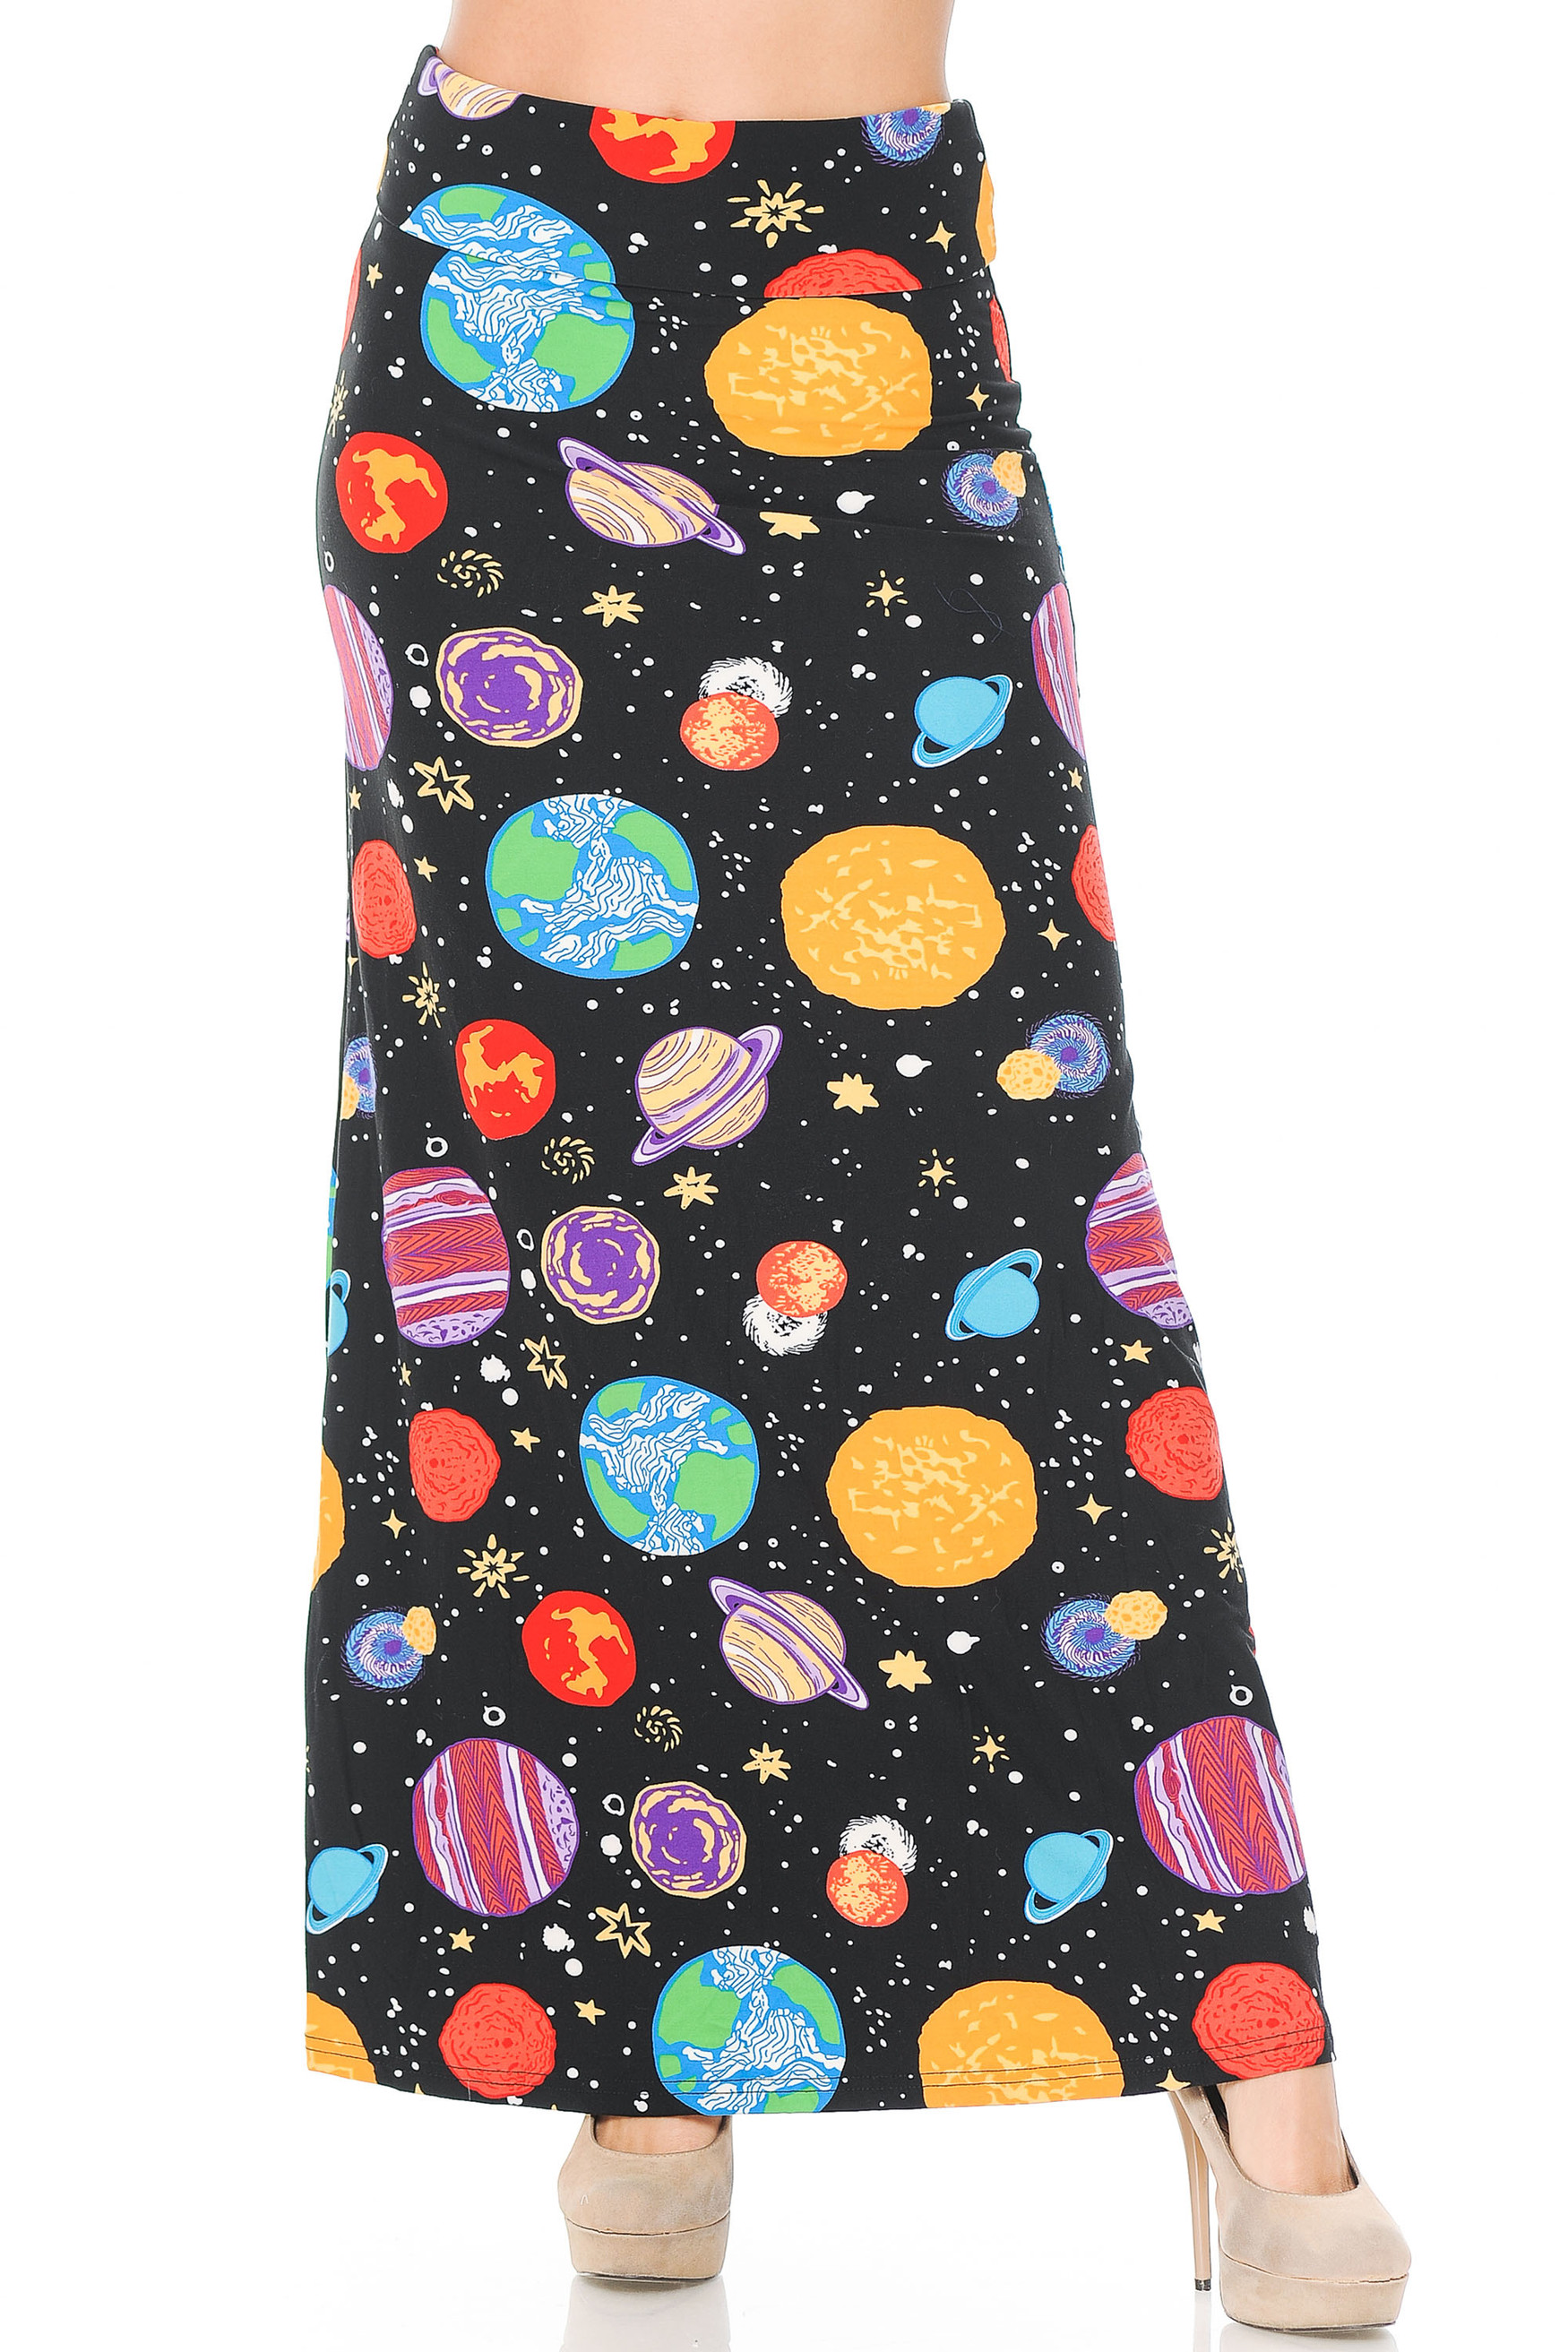 Brushed  Planets in Space Maxi Skirt